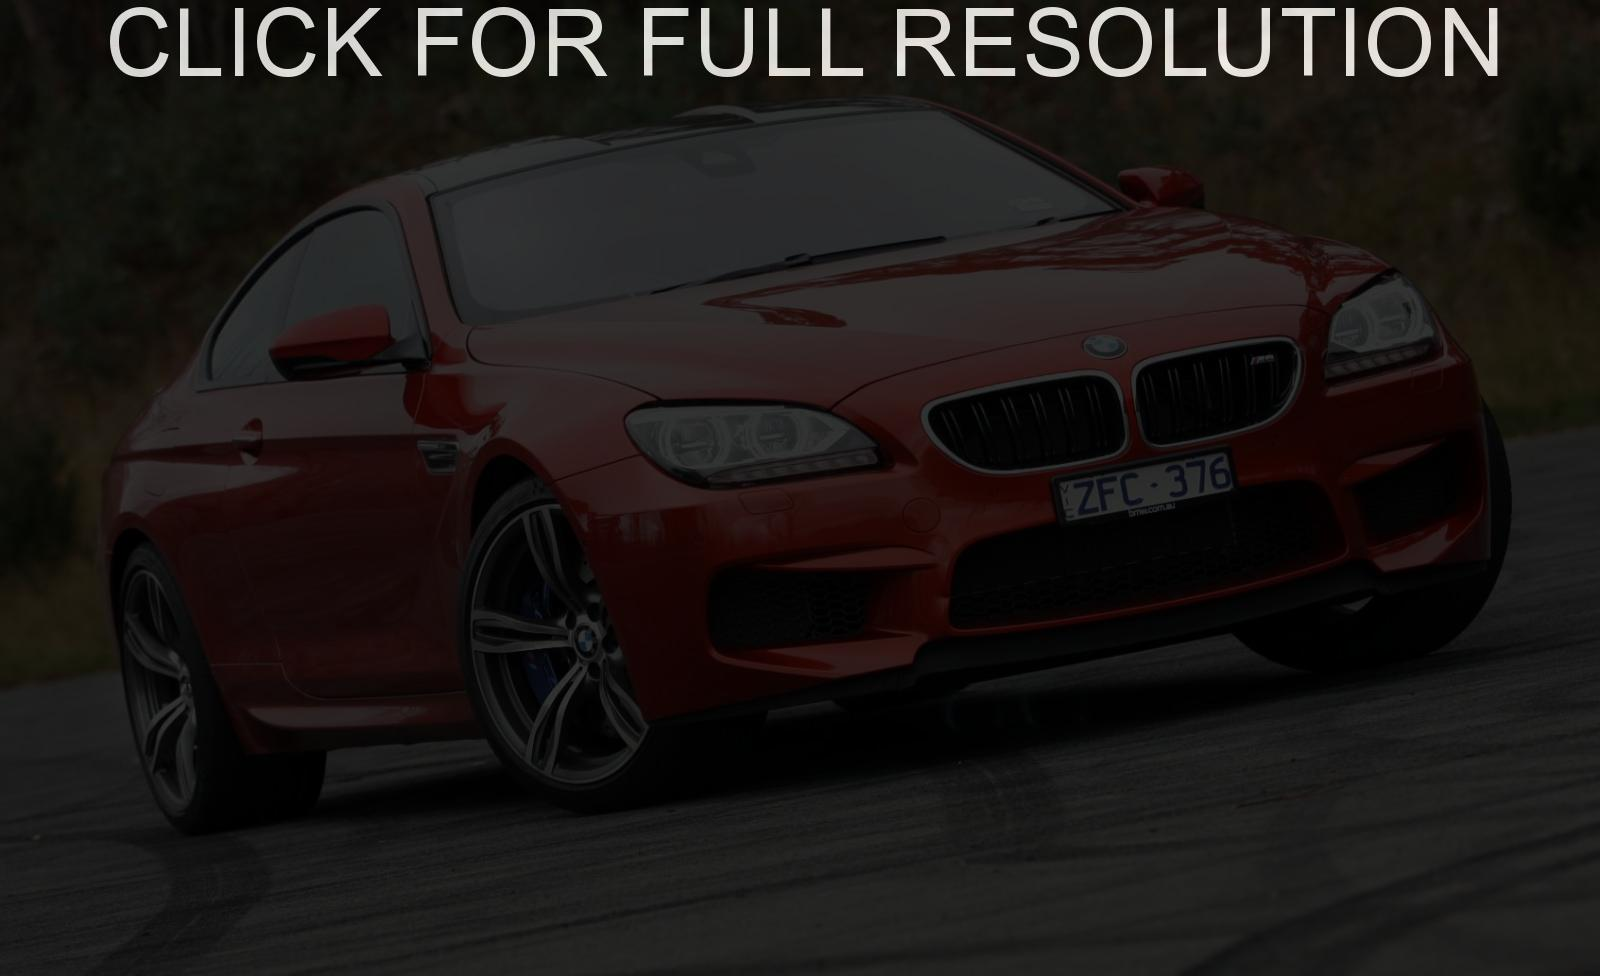 BMW M6 Auto & Car Wallpapers HD | Iphone | Android| Desktop 3 Wallpaper